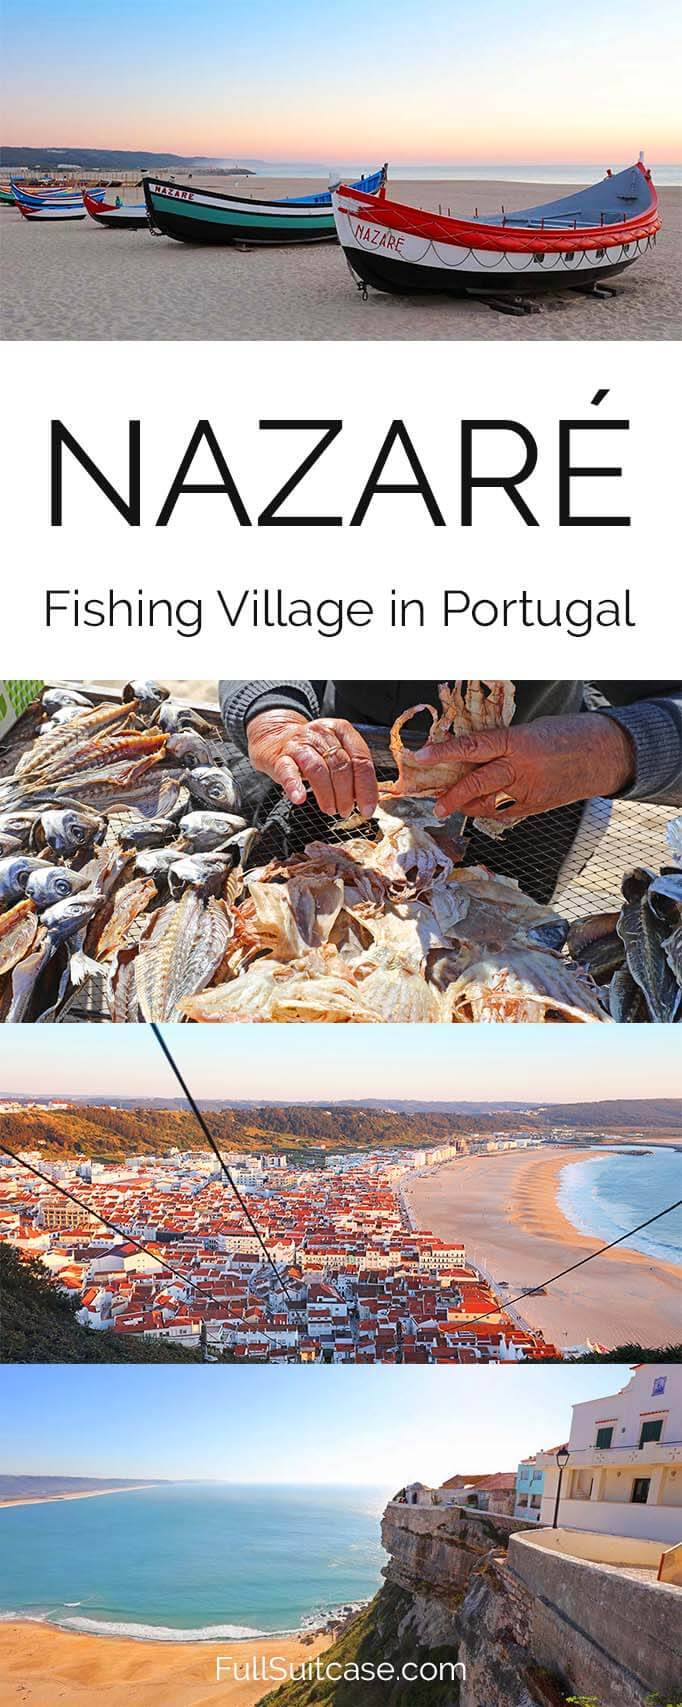 Nazare fishing village is not to be missed when traveling to Central Portugal